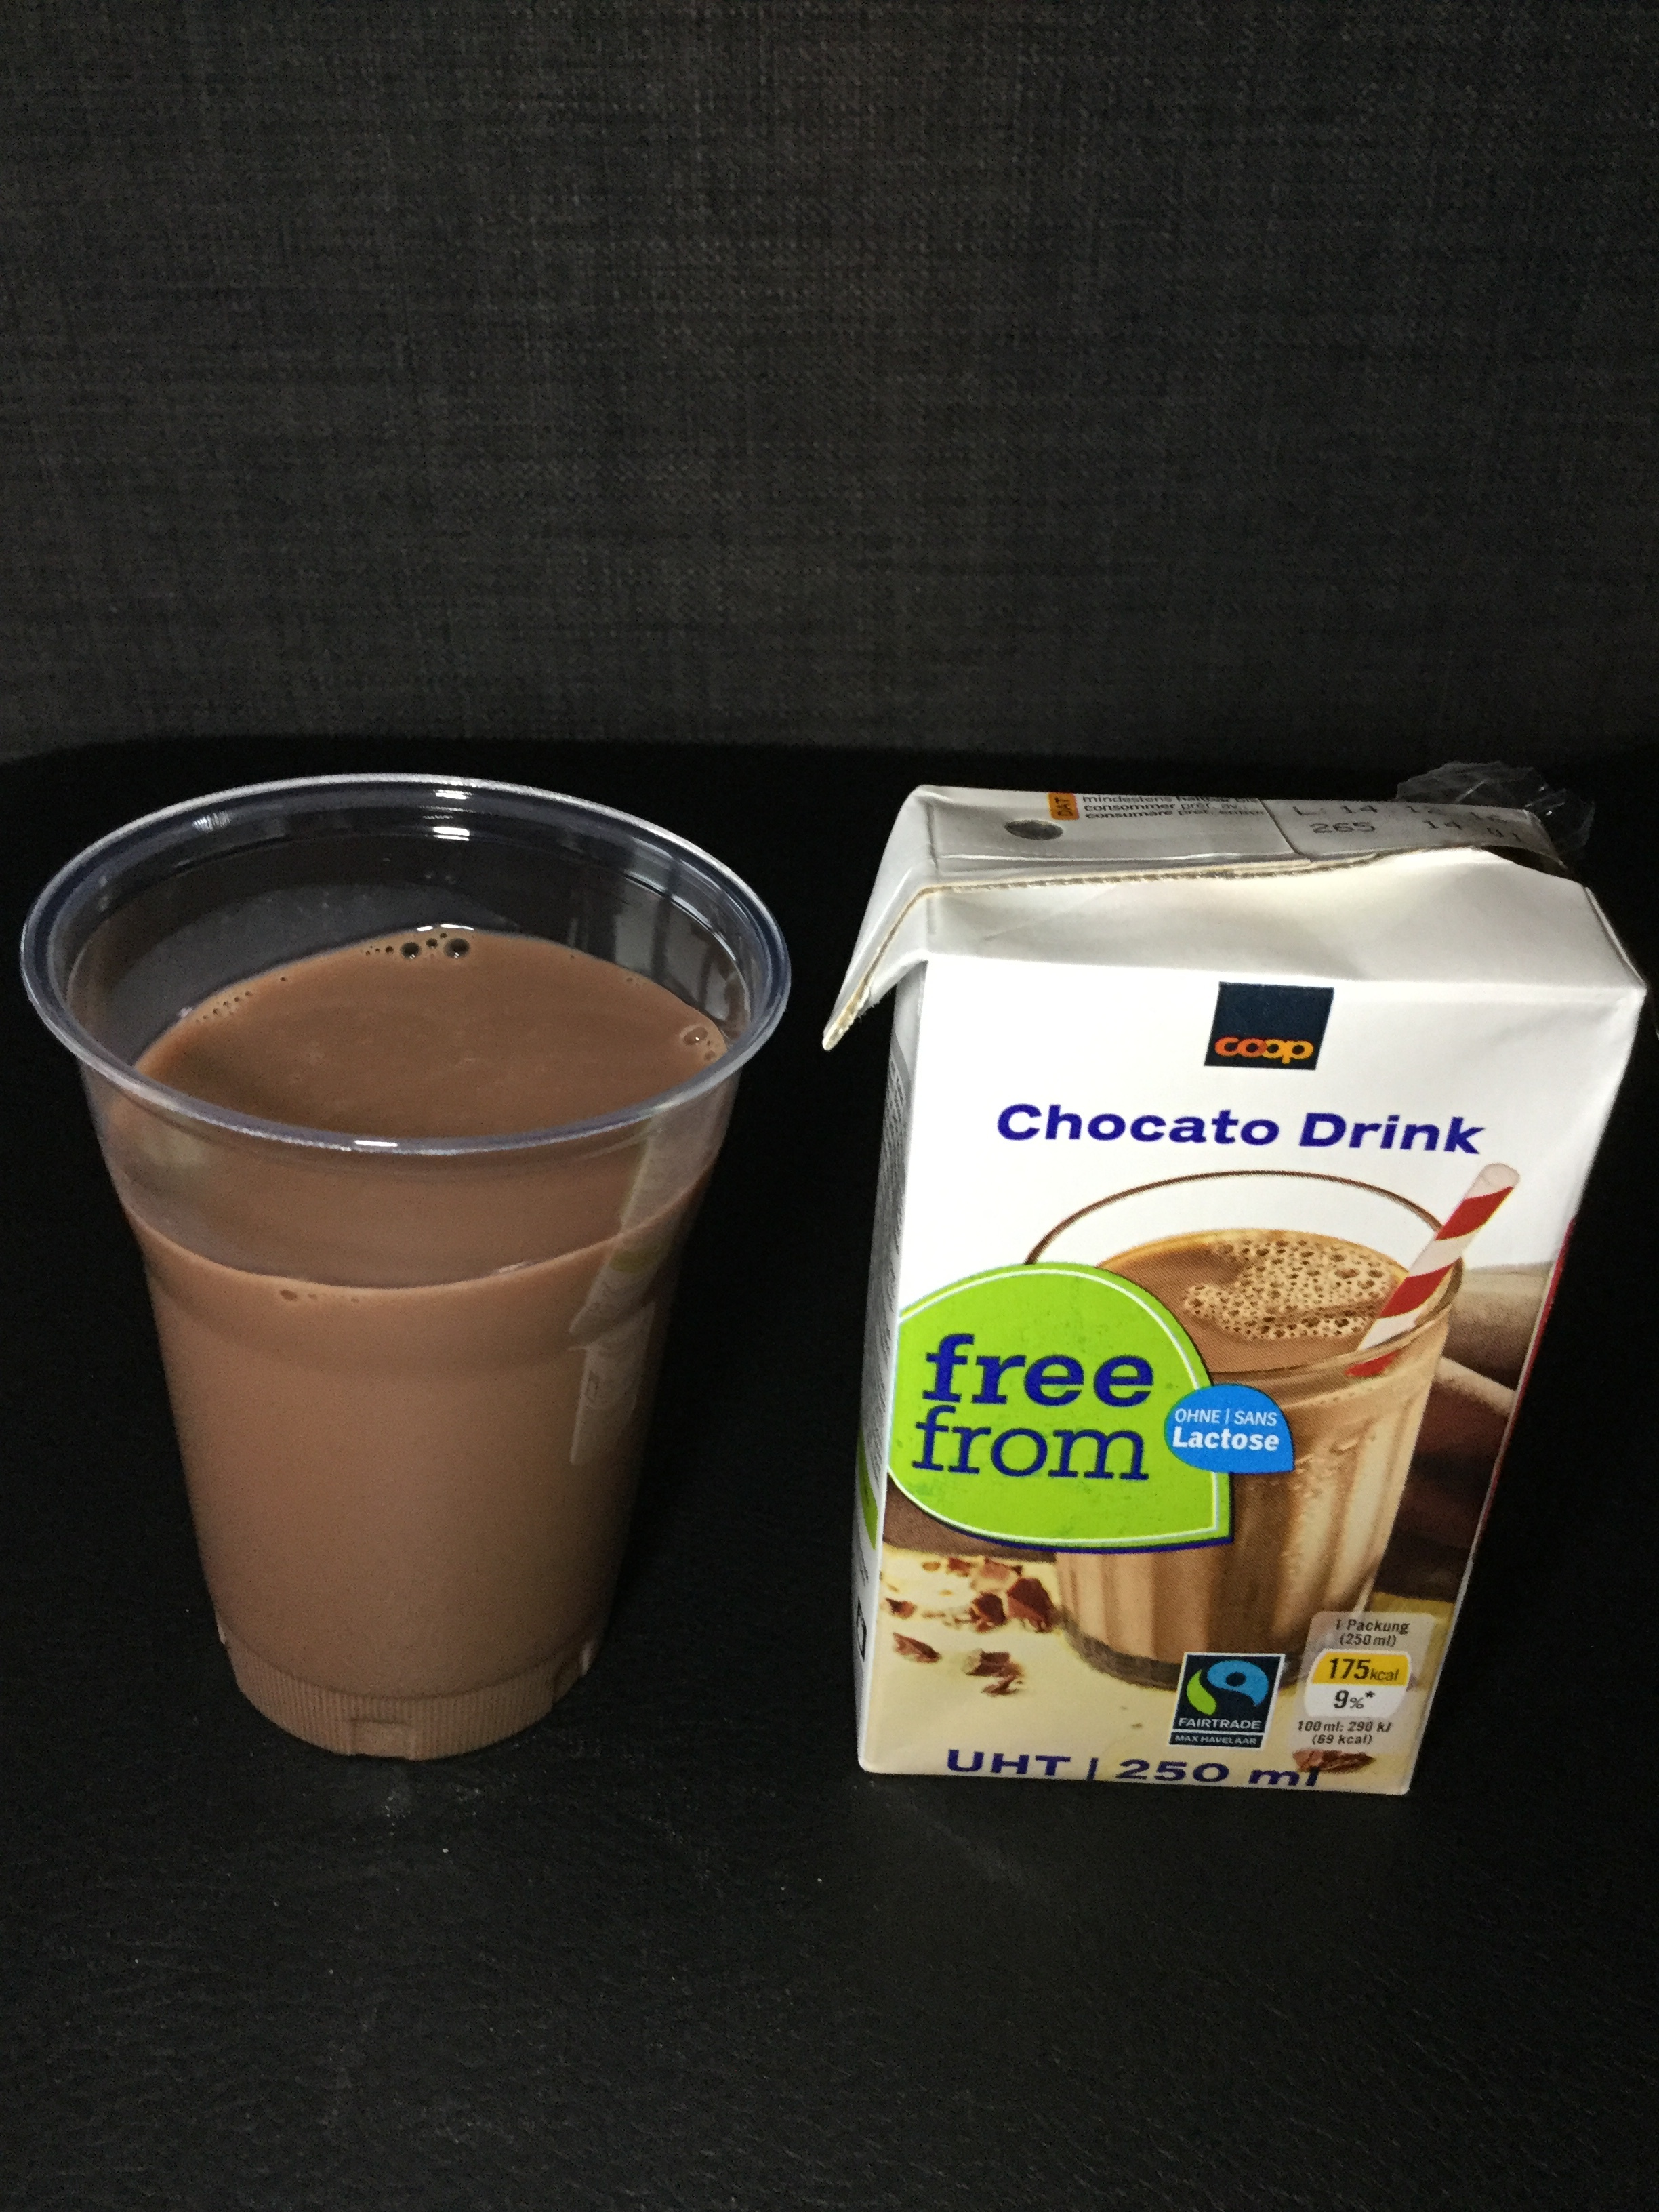 Coop Chocato Drink Lactose Free Cup